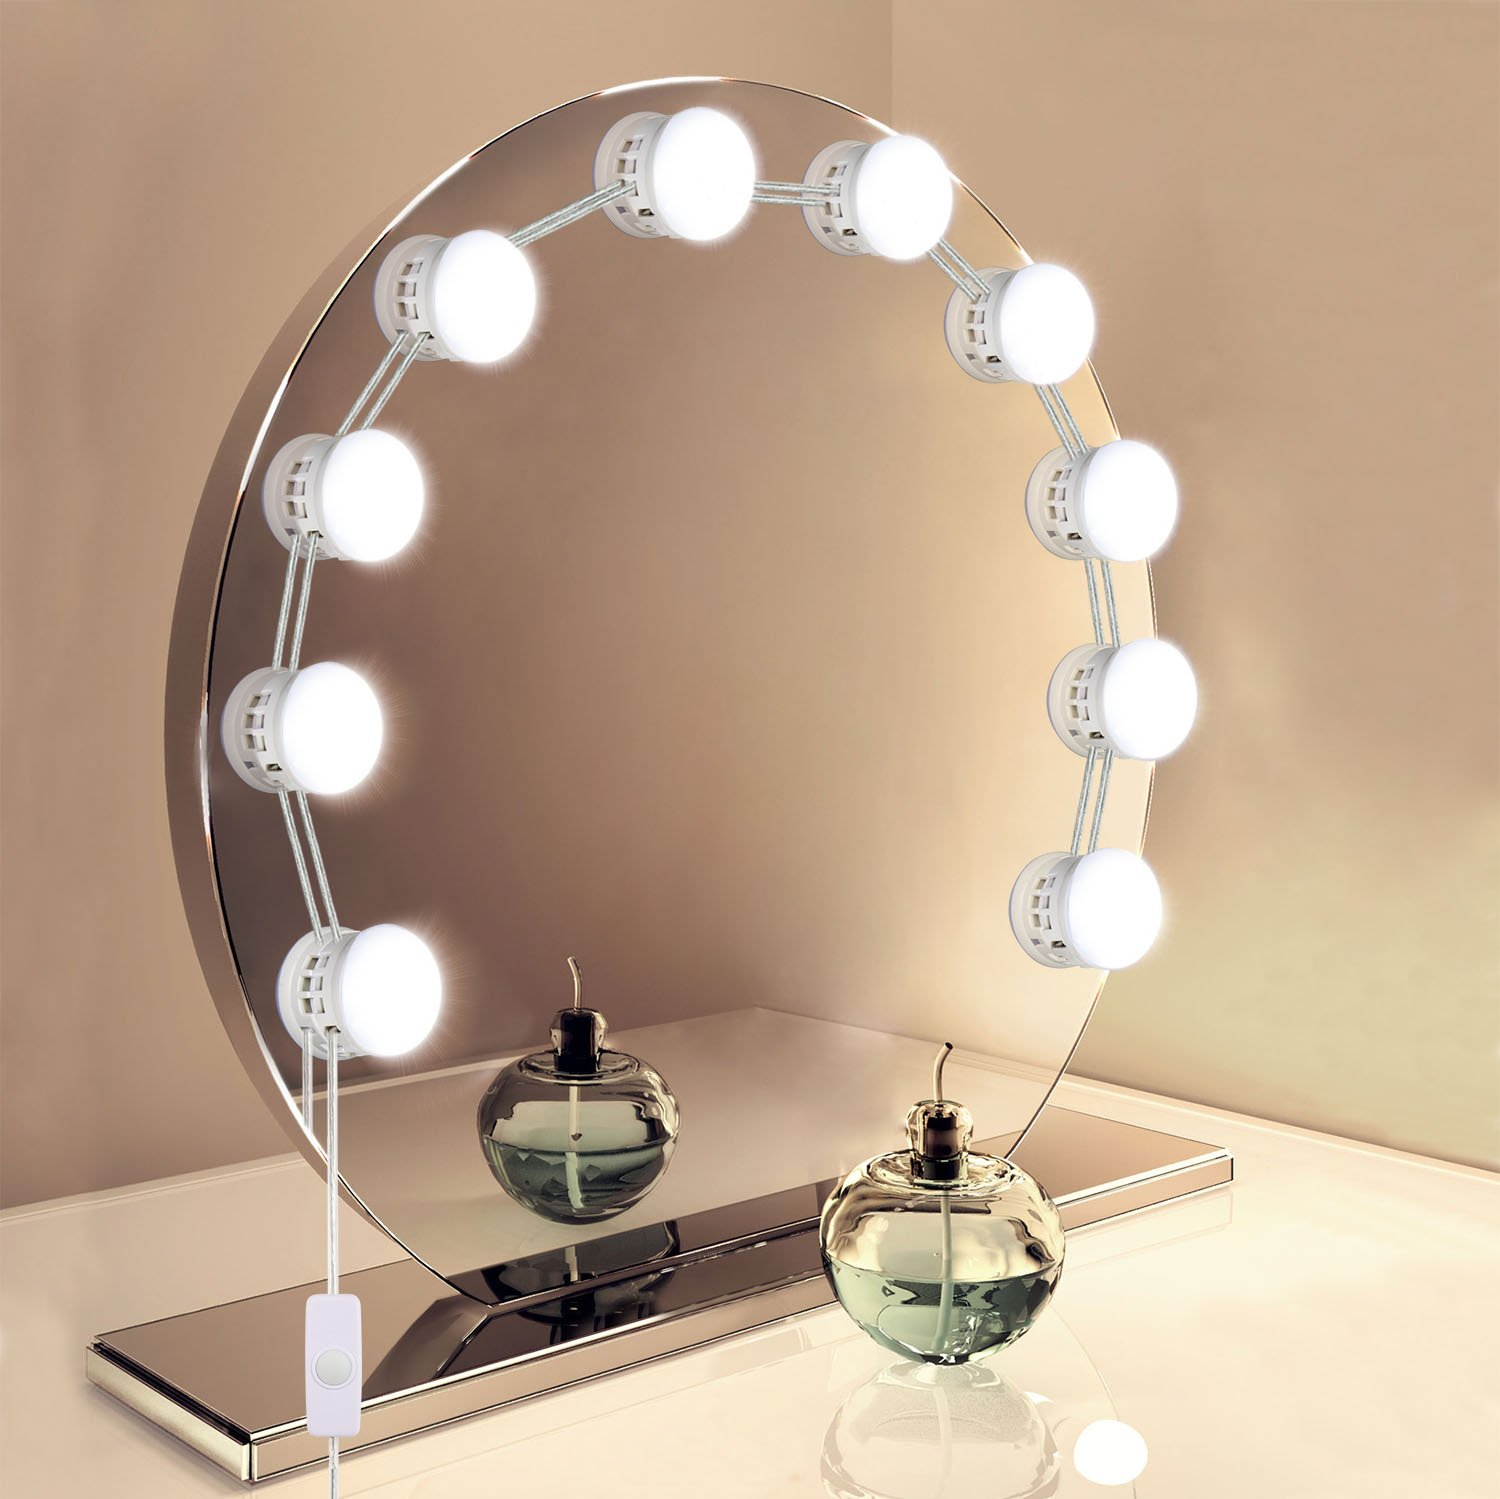 Mirror Lights, UNIFUN Hollywood Style LED Makeup Mirror Lights with 10 Dimmable Bulbs, USB Powered Flexible Lighting Fixture 7000K for Bathroom, Makeup Dressing Table (Mirror Not Include) (Button)